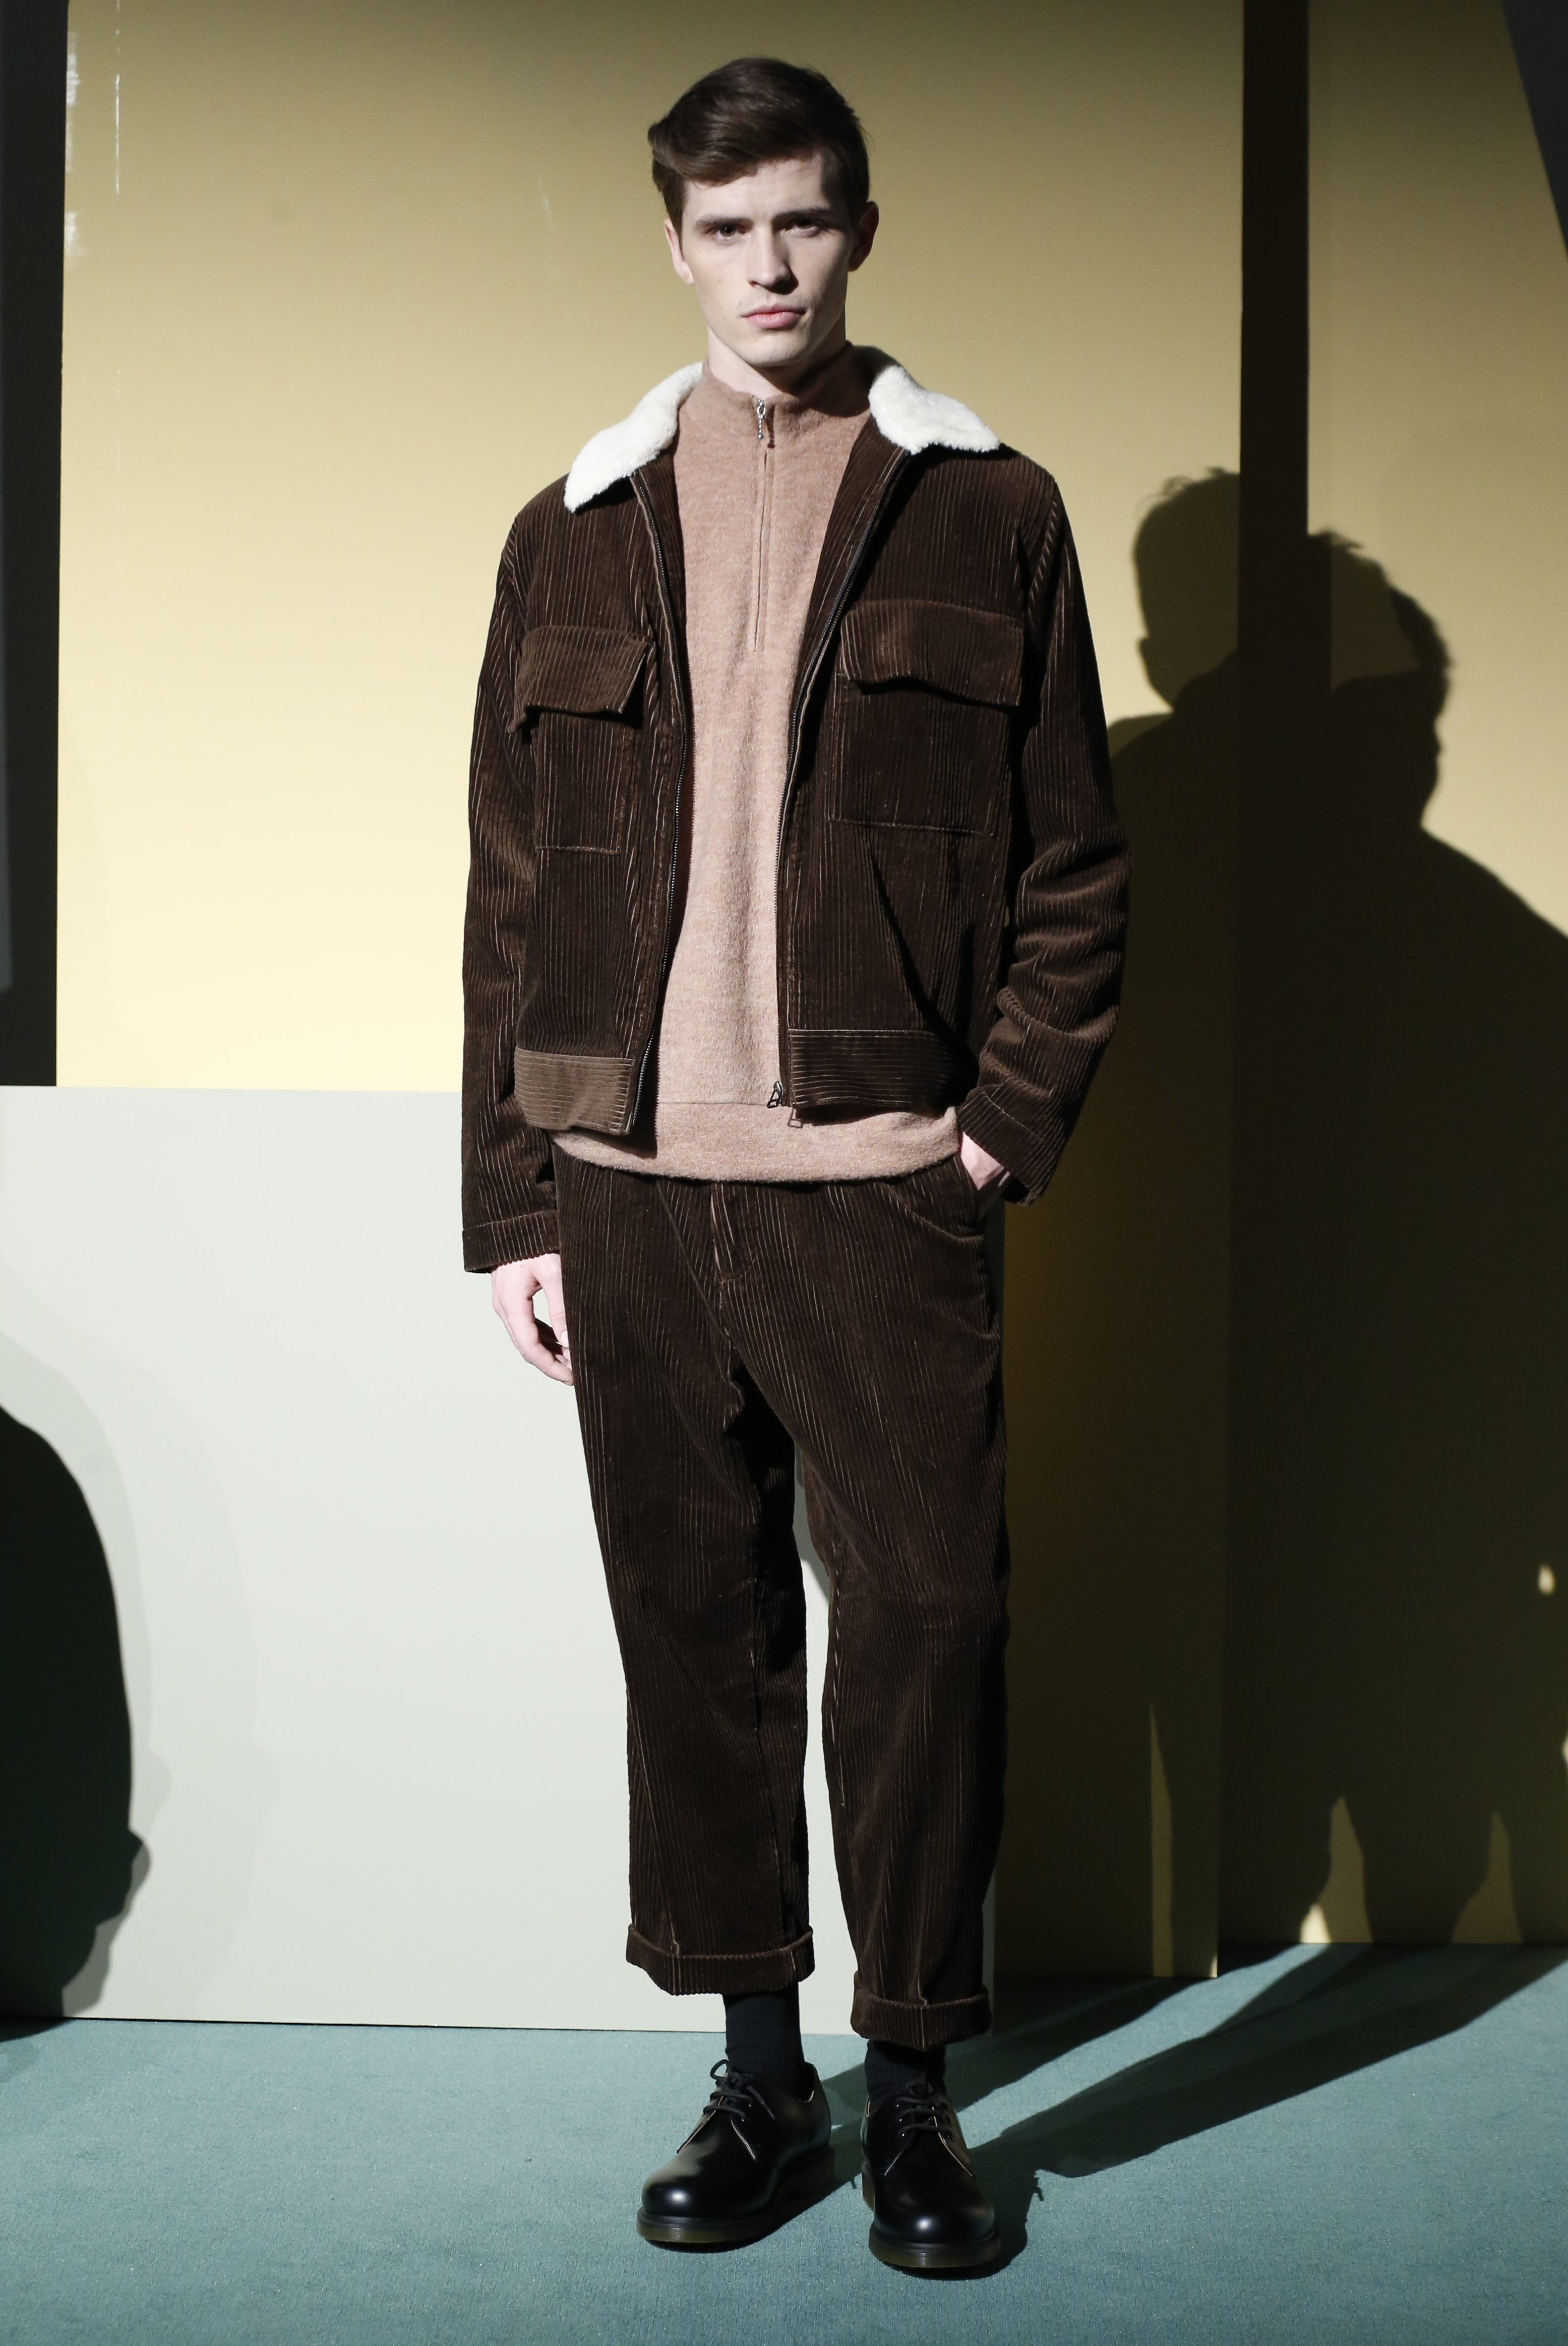 Maiden Noir Men's Fall 2017